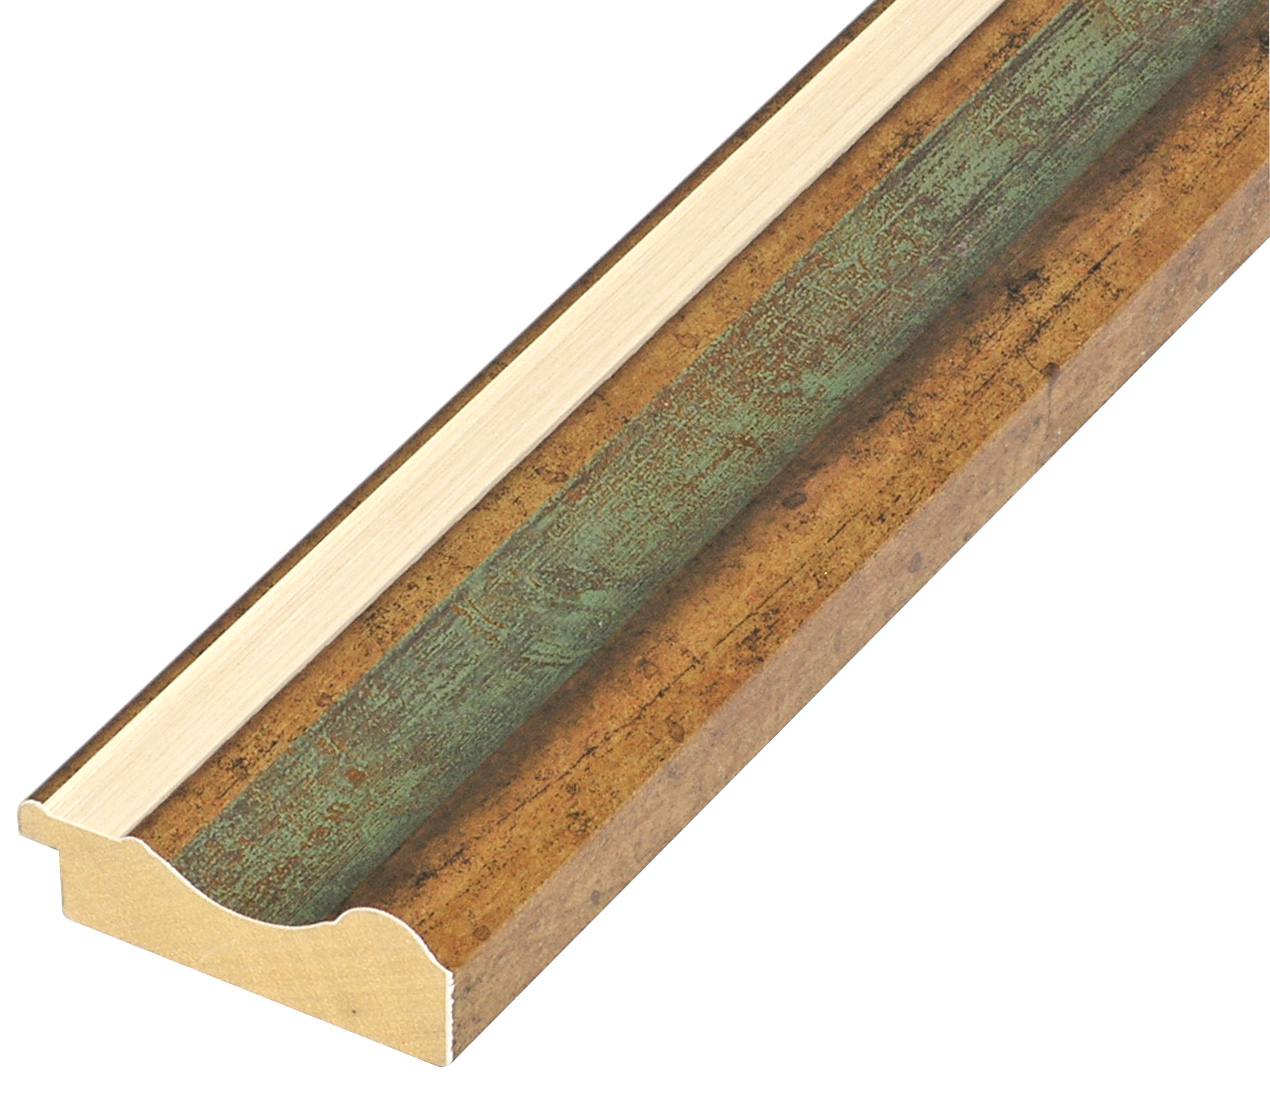 Moulding ayous - width 61mm height 20 - Gold, green band